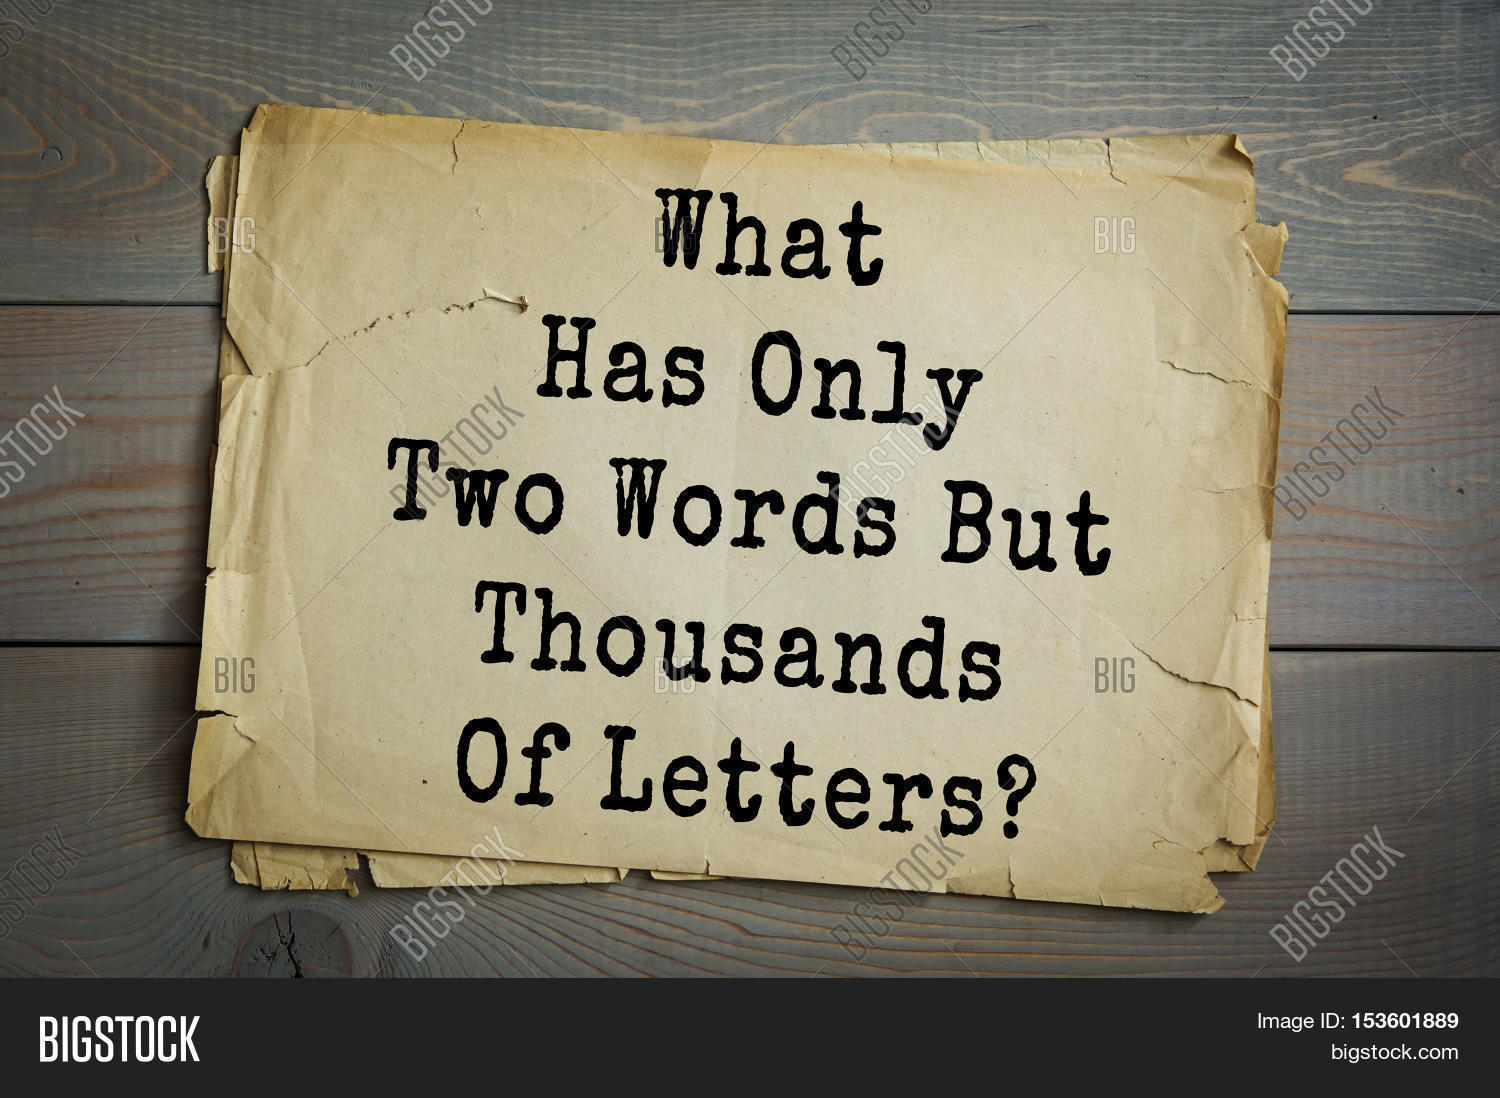 what has only two words but thousands of letters traditional riddle what has only image amp photo bigstock 25530 | 153601889